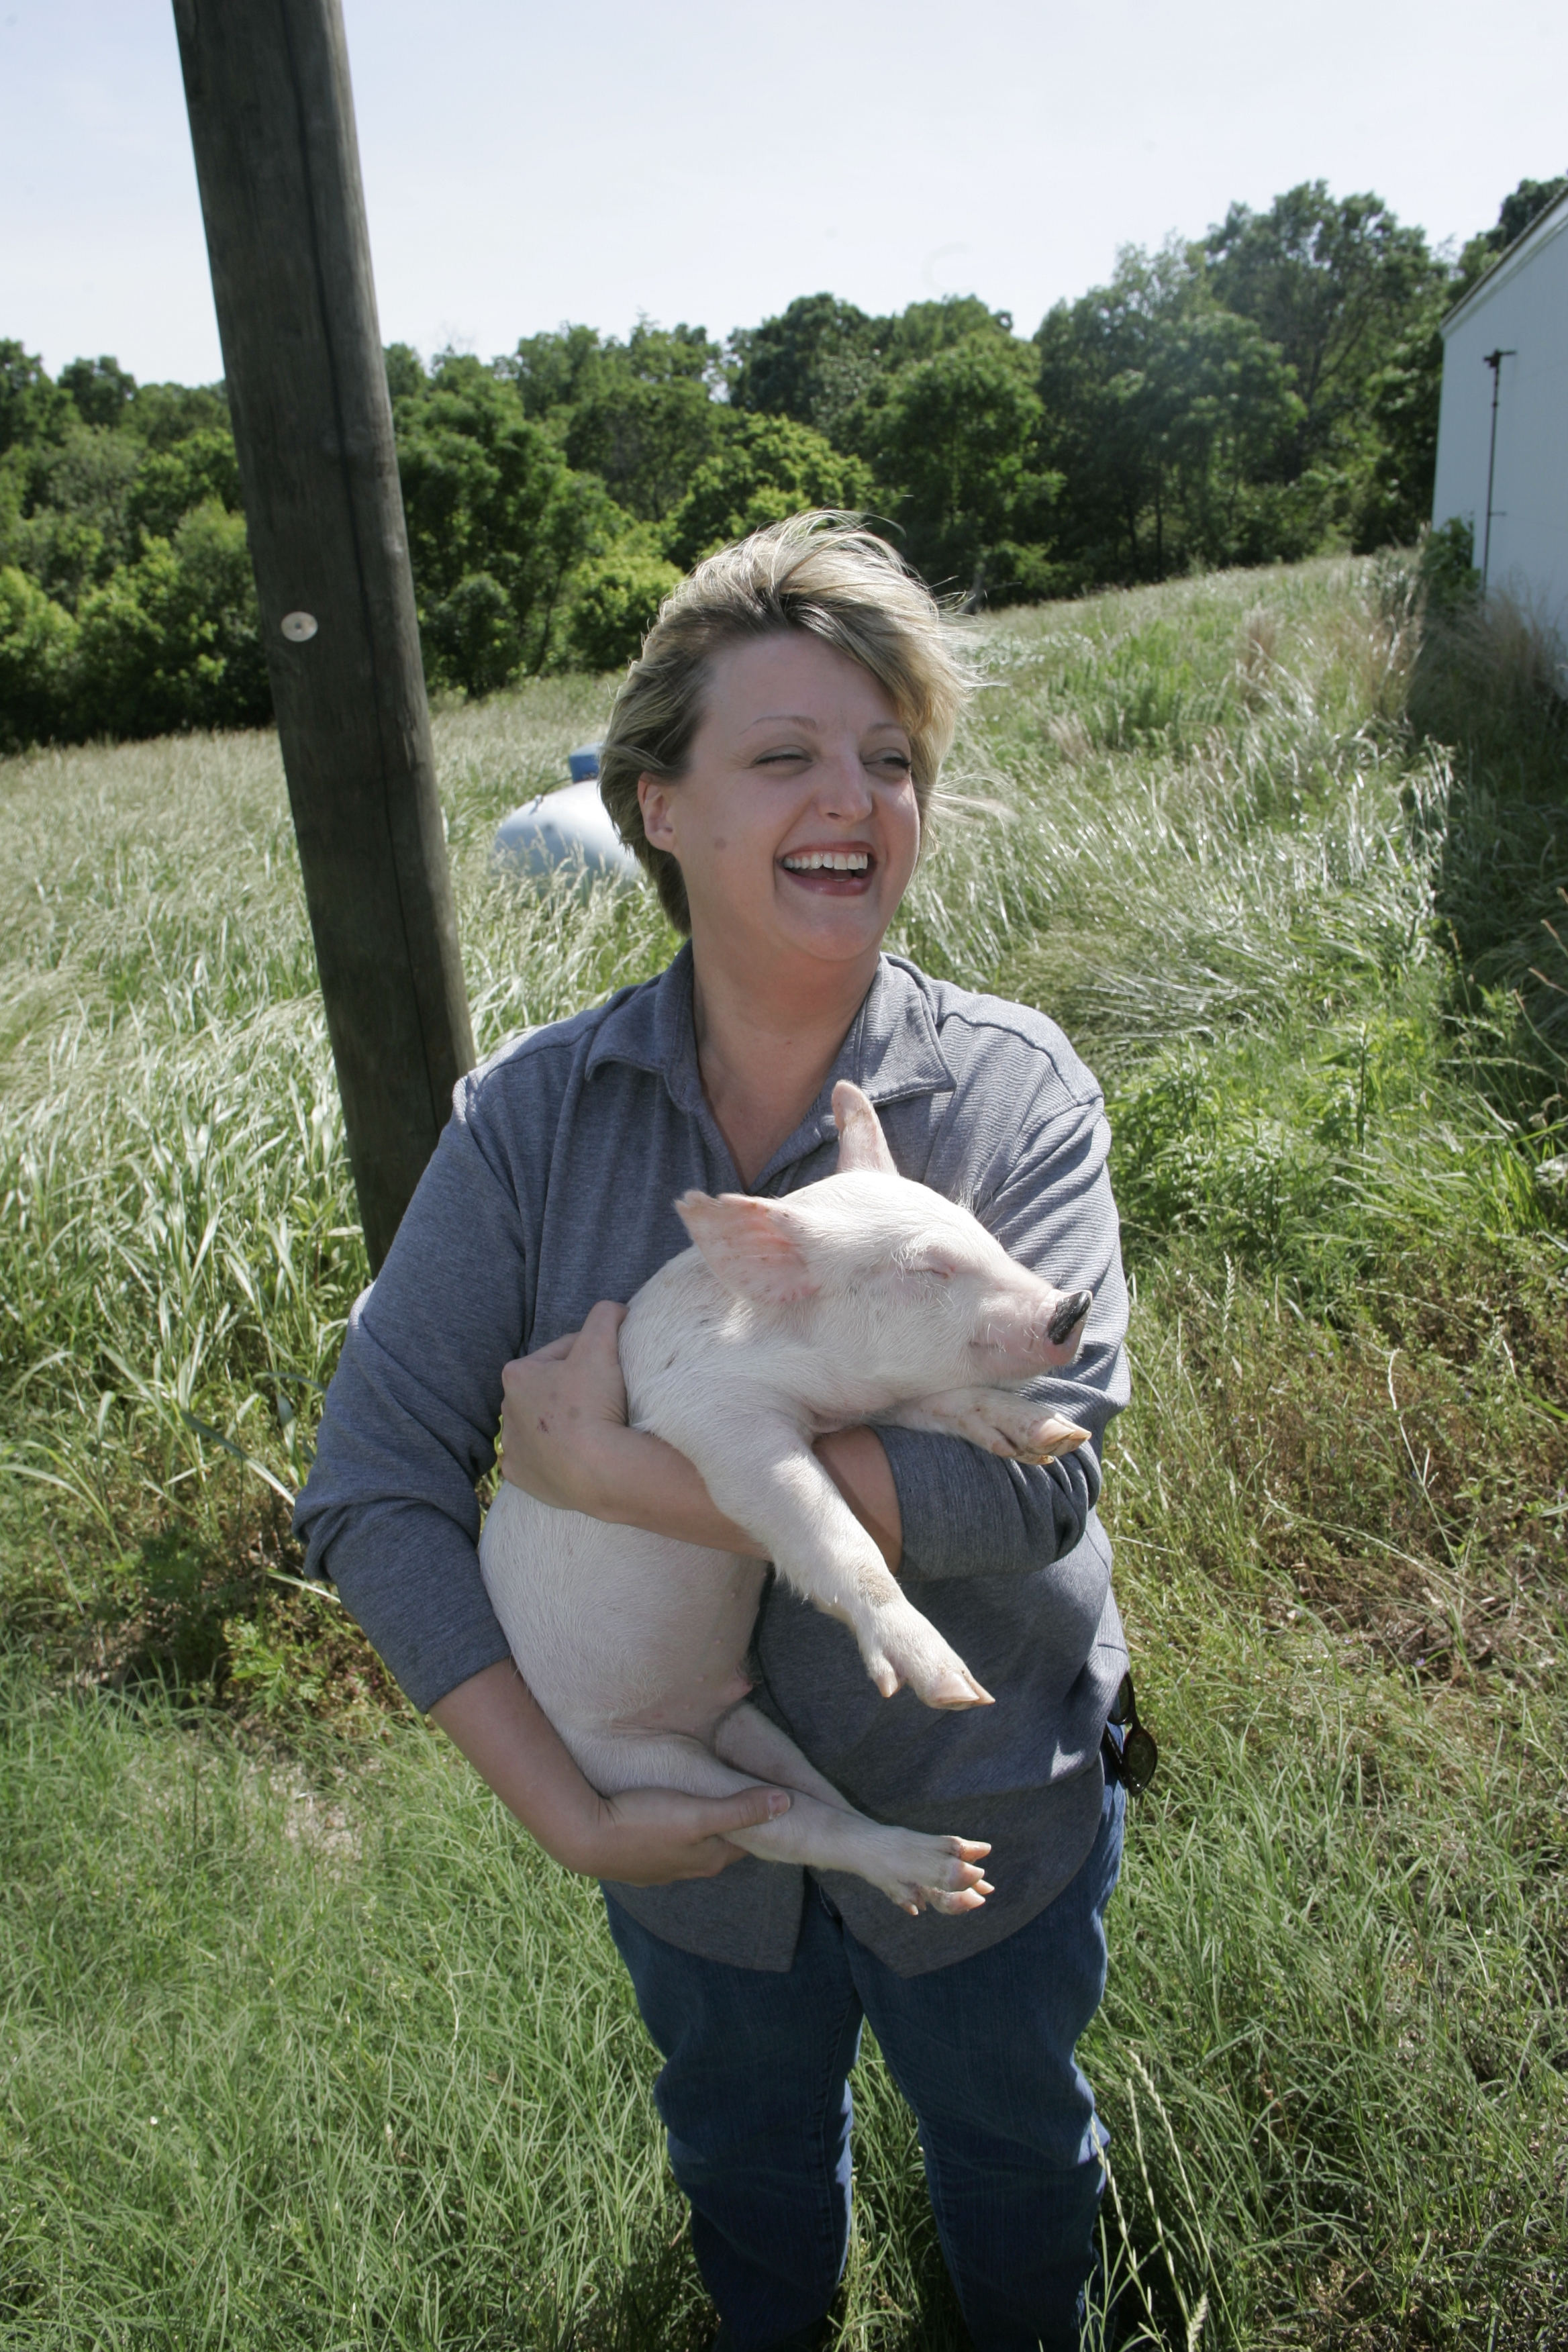 Melony Wilson handles livestock frequently as part of her job with the University of Georgia Department of Animal and Dairy Science. She also knows how to keep herself safe while doing so. A new Georgia 4-H program will now help 4-H agents teach children across the state how to get up close and person with livestock without contracting a zoonotic disease.